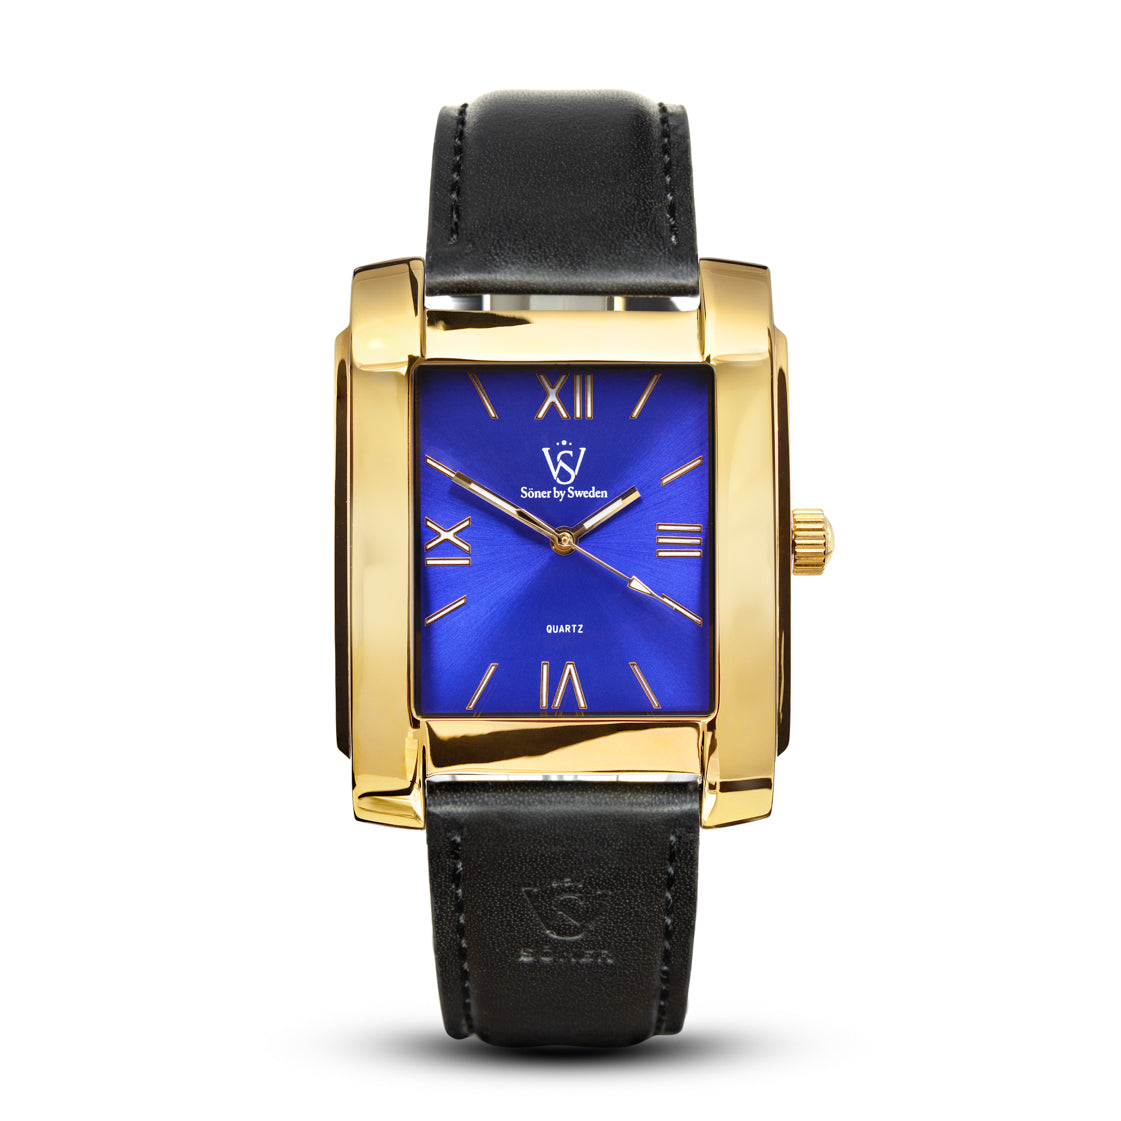 SQUARE MEN'S WATCH - LEGACY B Polished gold - Blue dial